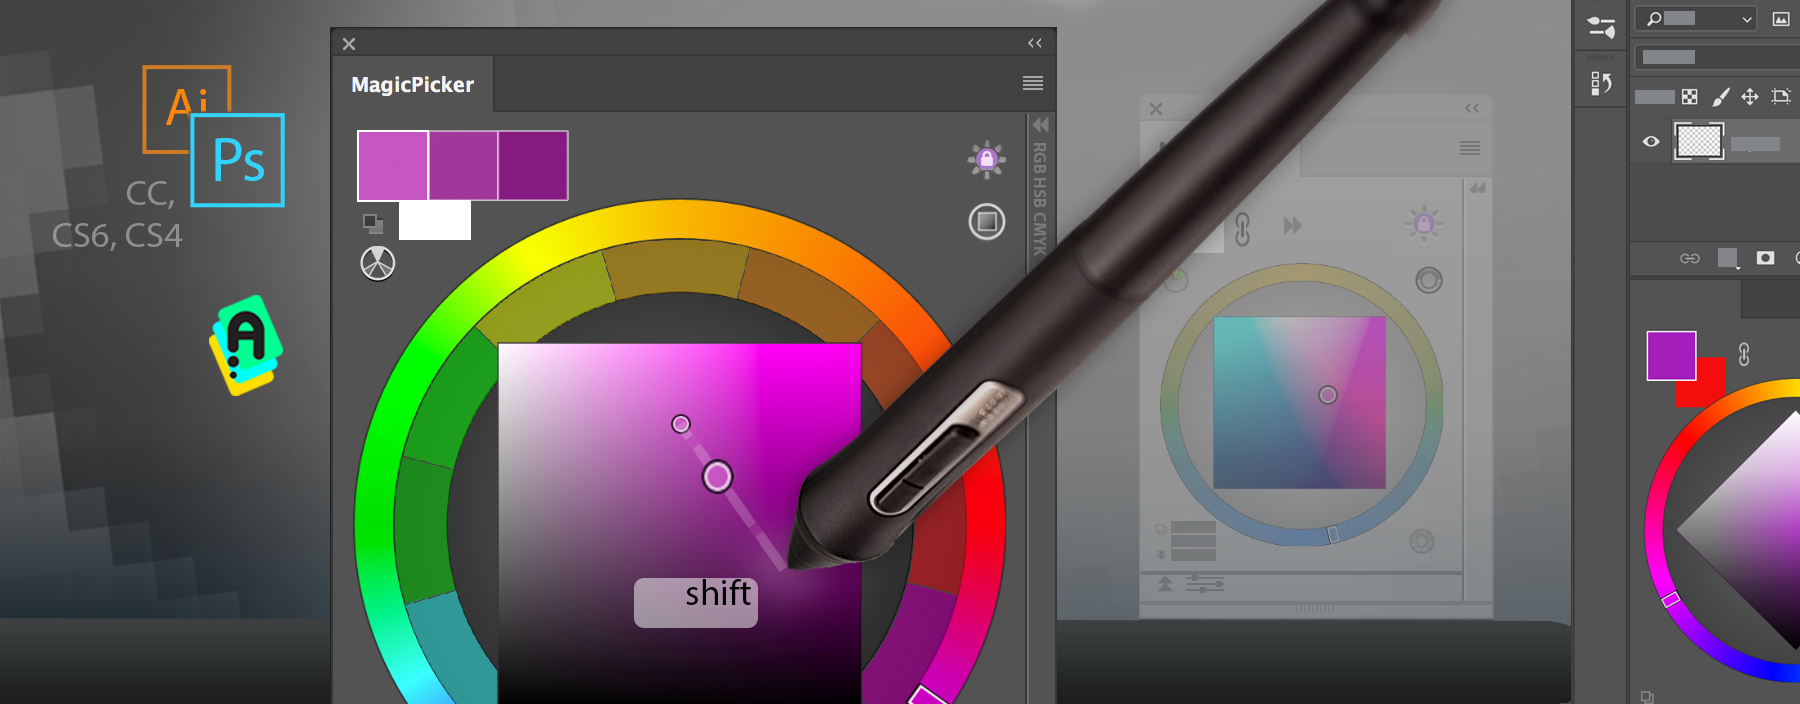 Shift+click moves color wheel pointer towards cursor and allows to slightly change current color with precision